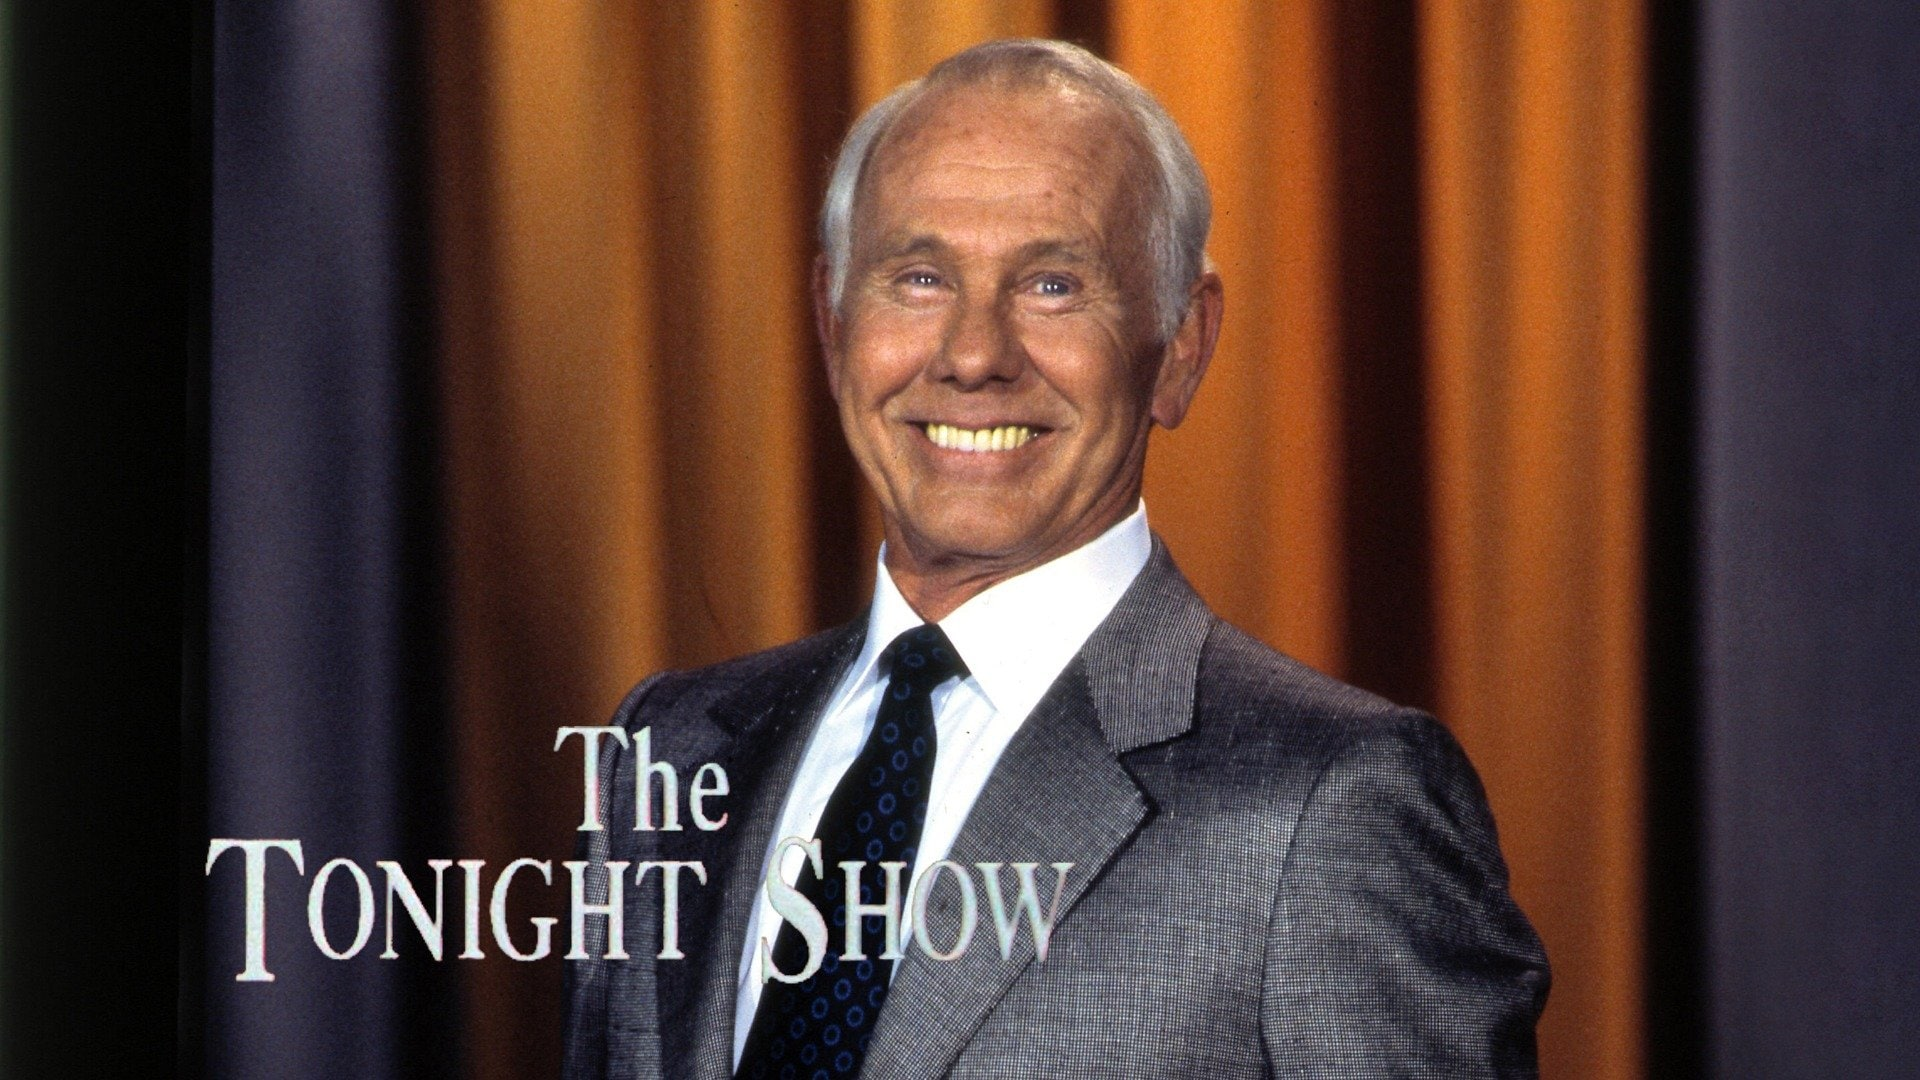 The Johnny Carson Show: Comic Legends Of The '70s - Michael Palin (4/18/85)